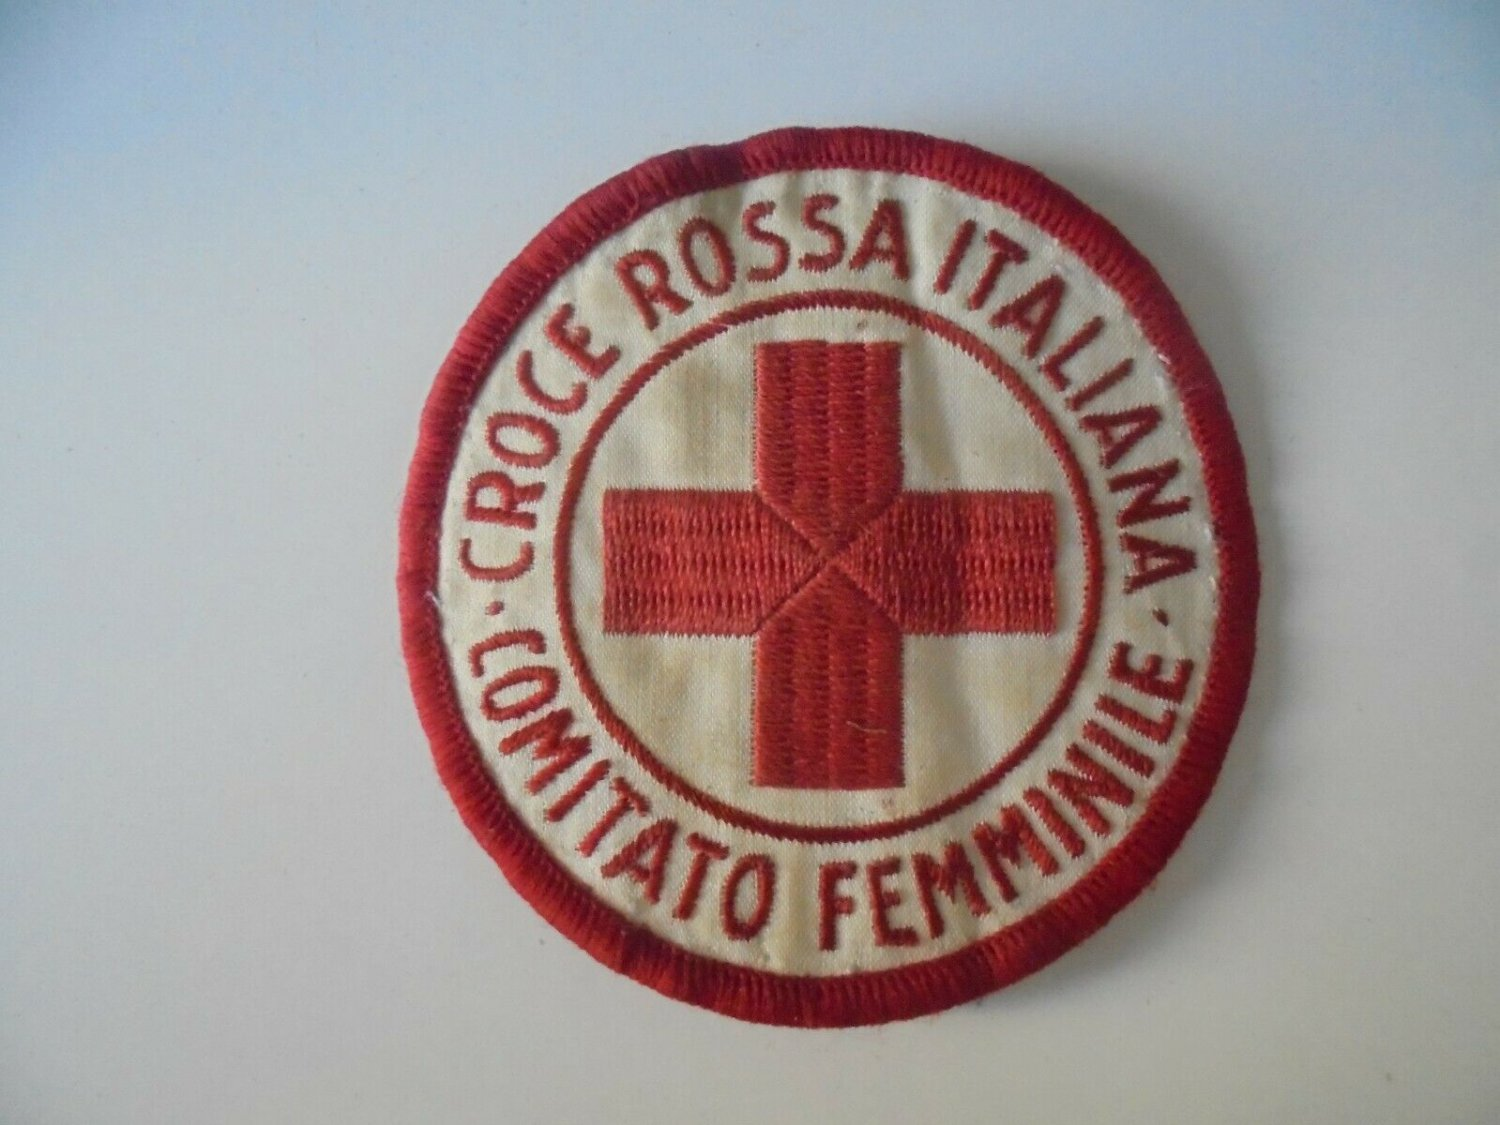 ITALIAN RED CROSS Women Committee Croce Rossa Italiana Comitato Femminile patch Original 1960s